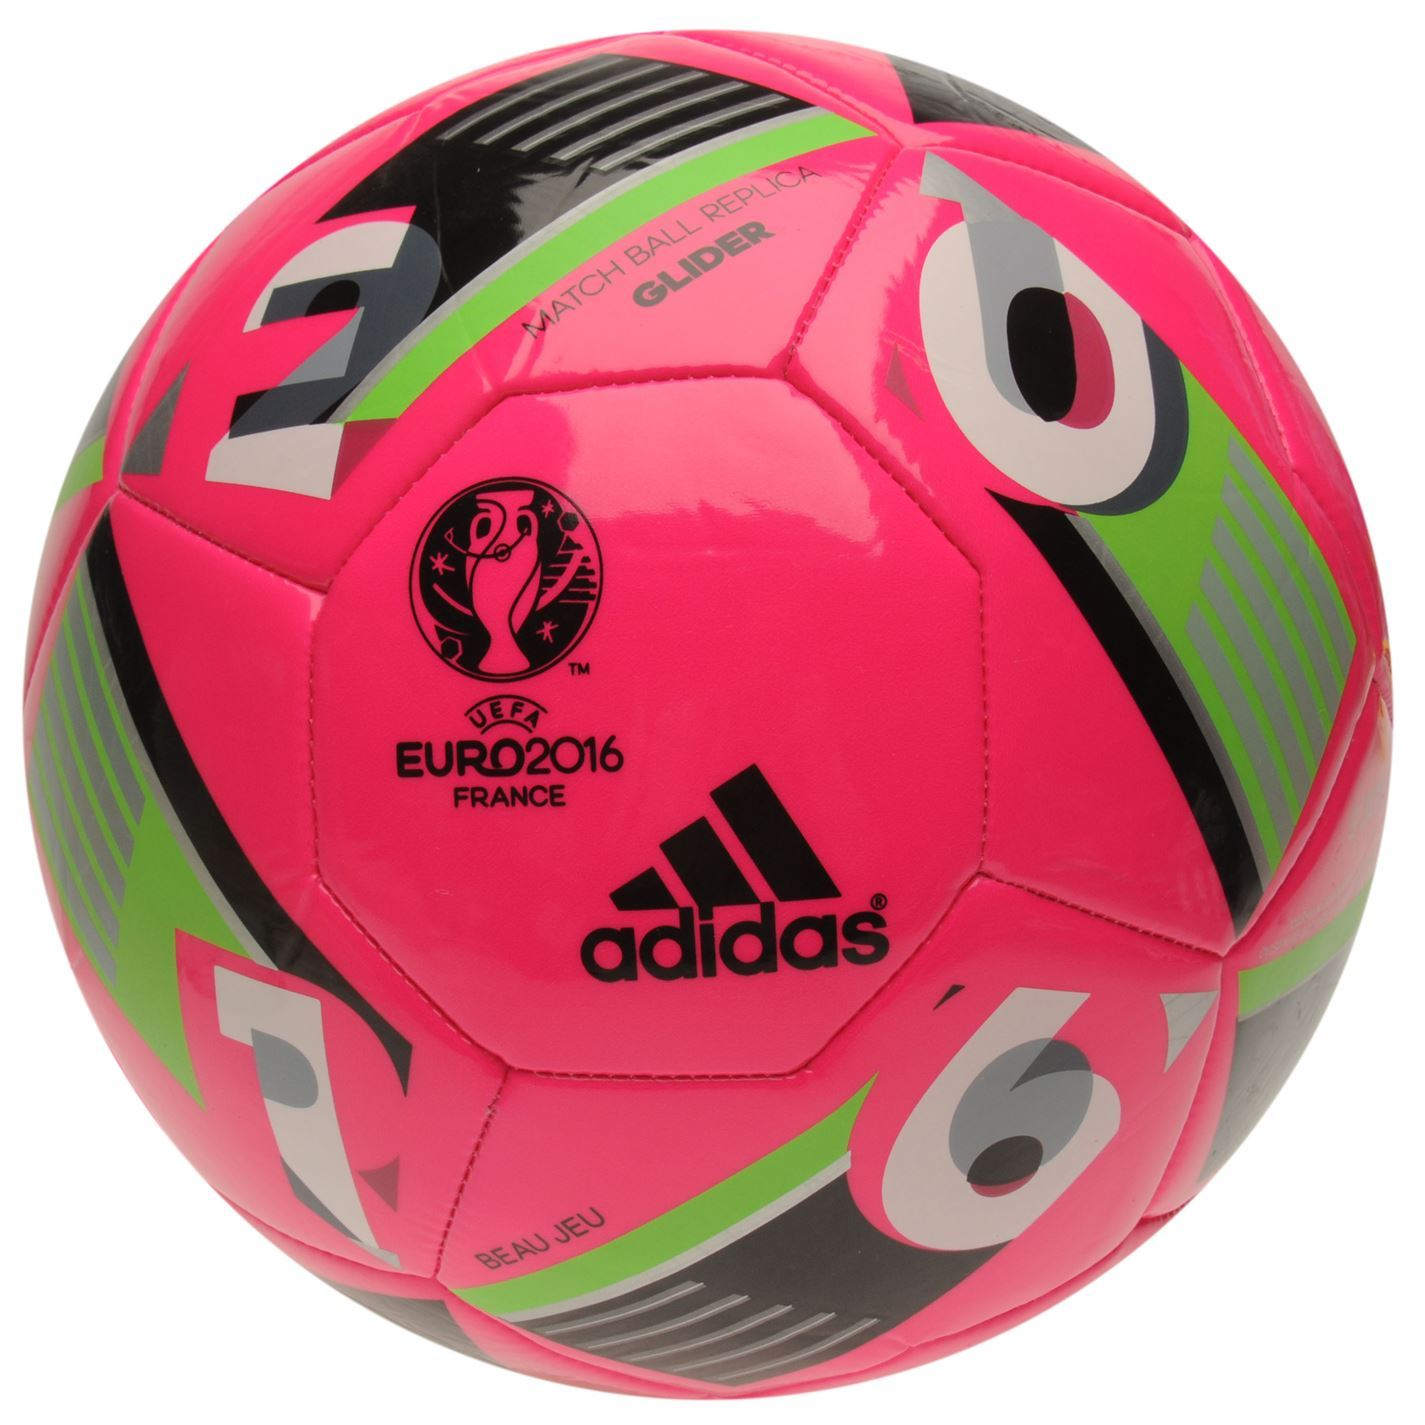 adidas uefa euro 2016 glider football shock pink soccer. Black Bedroom Furniture Sets. Home Design Ideas